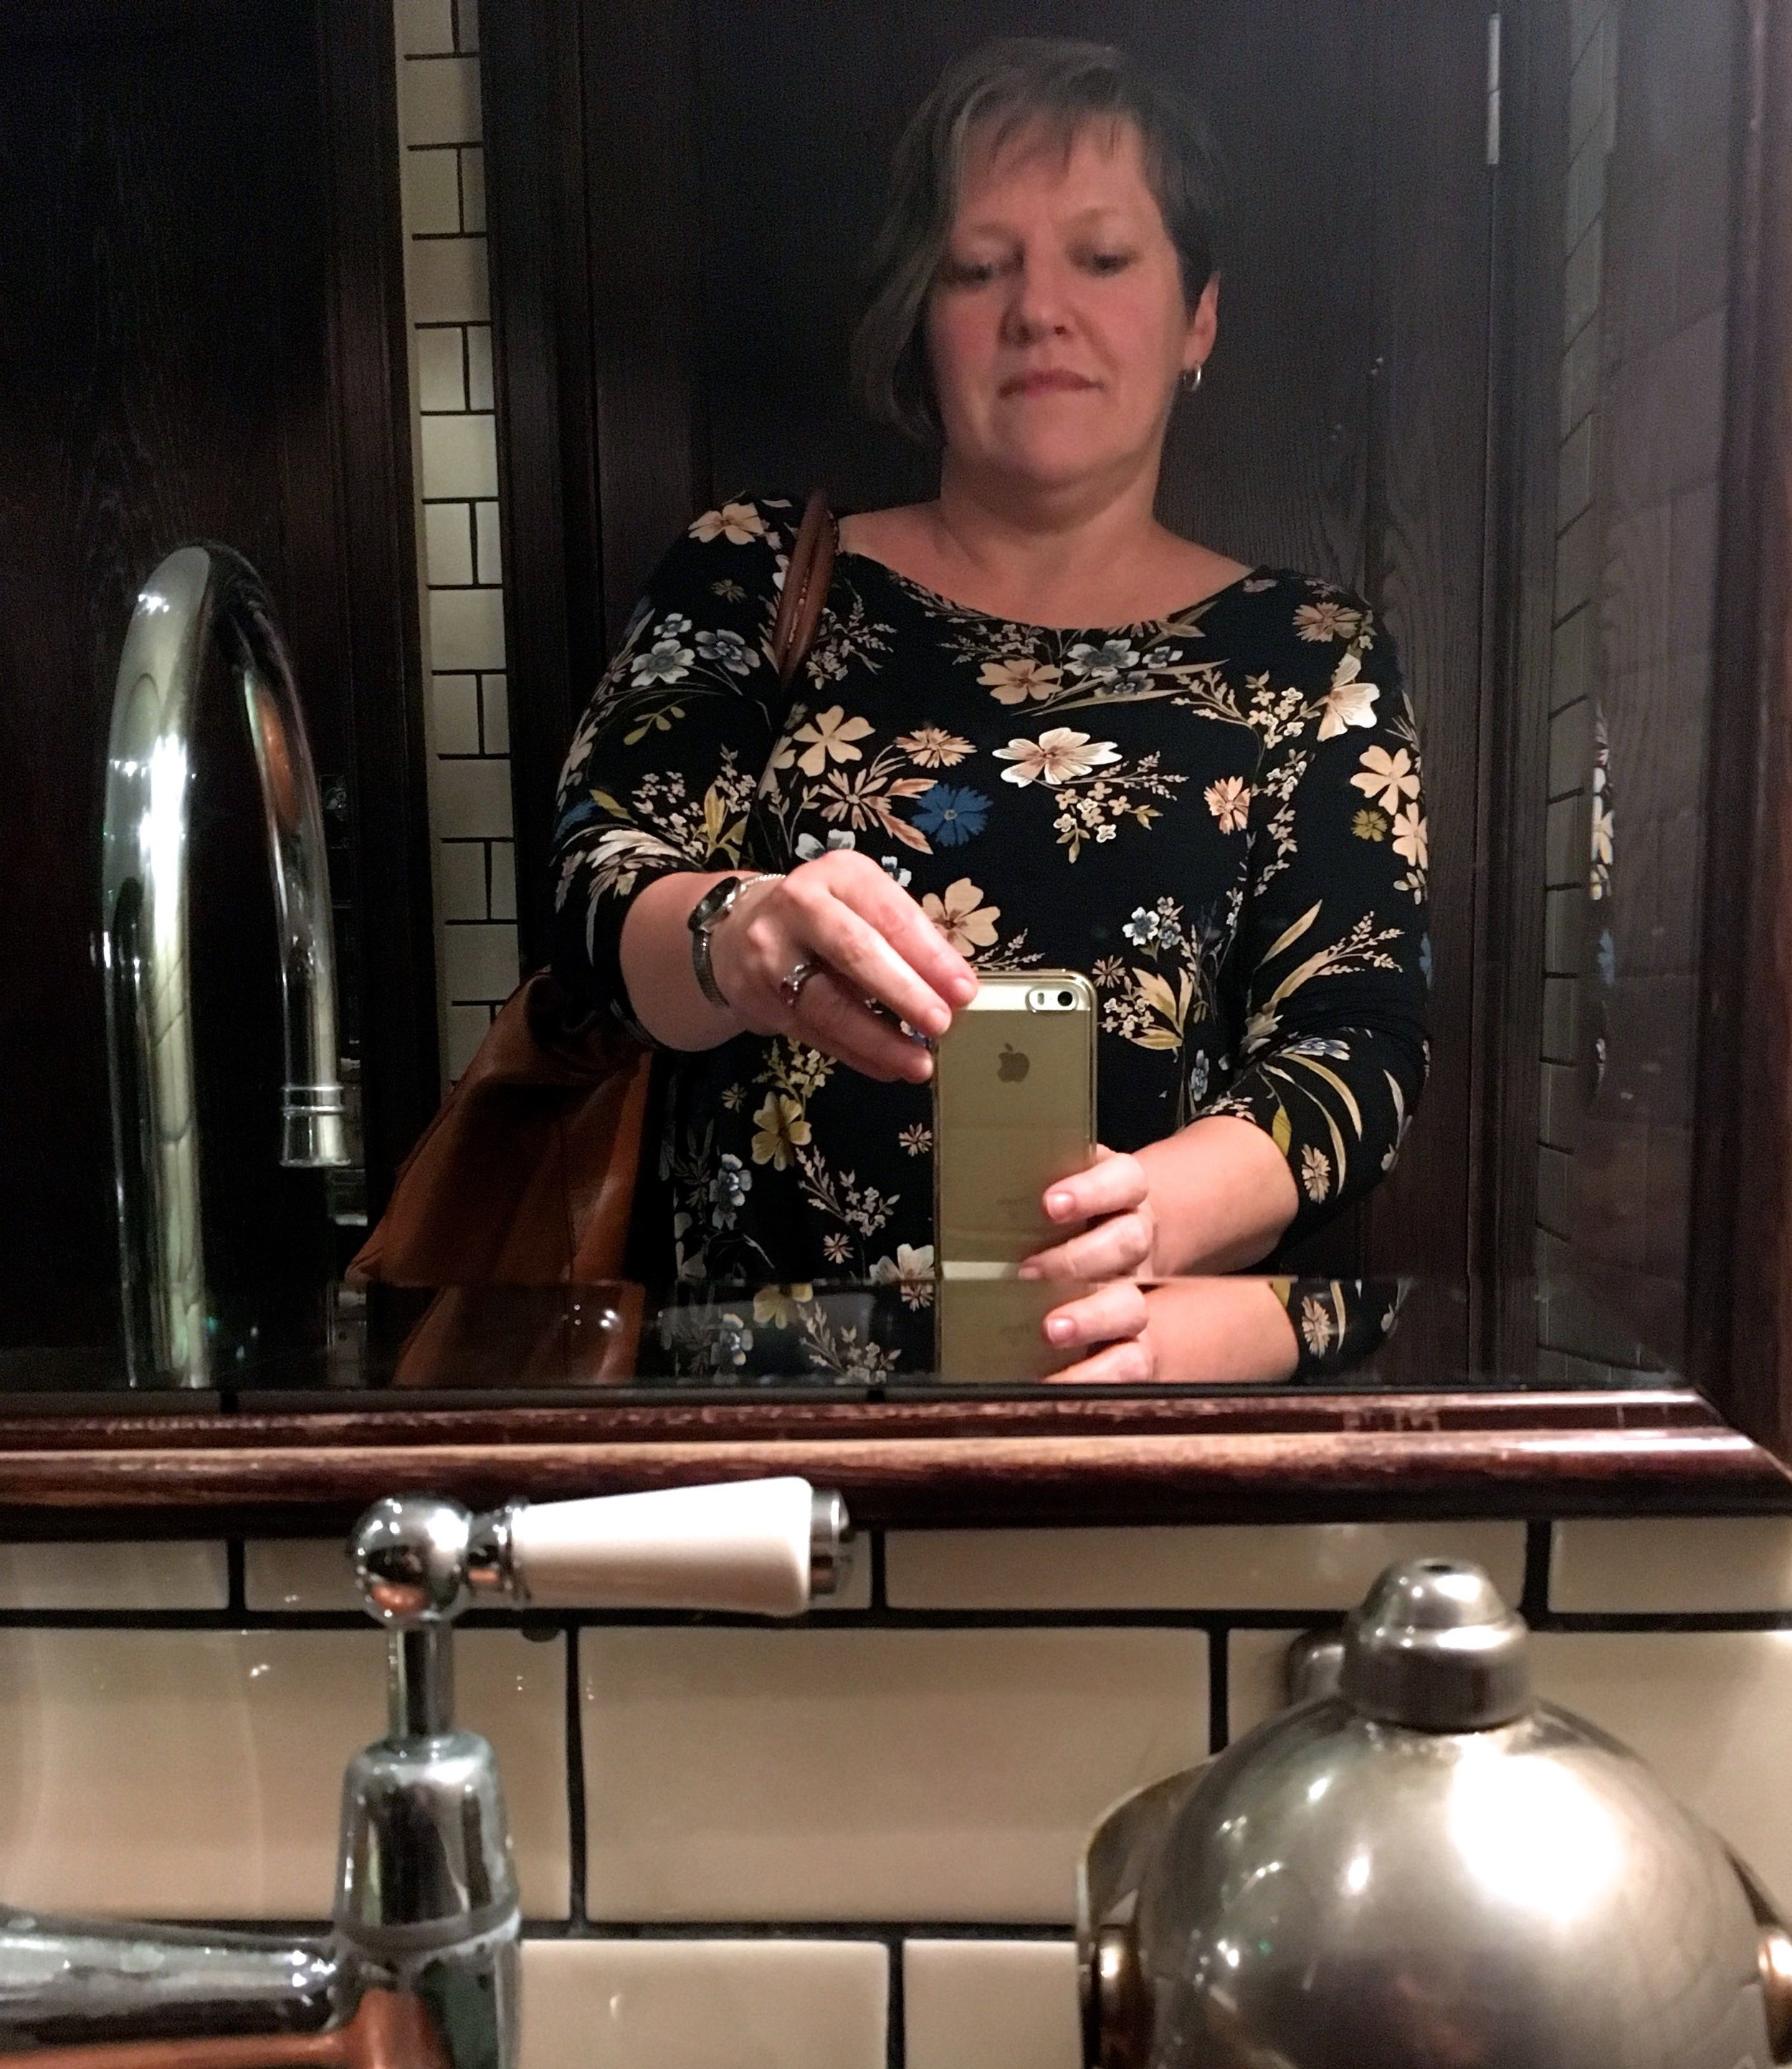 Mirrors and me in the Ladies at les deux salons in central london